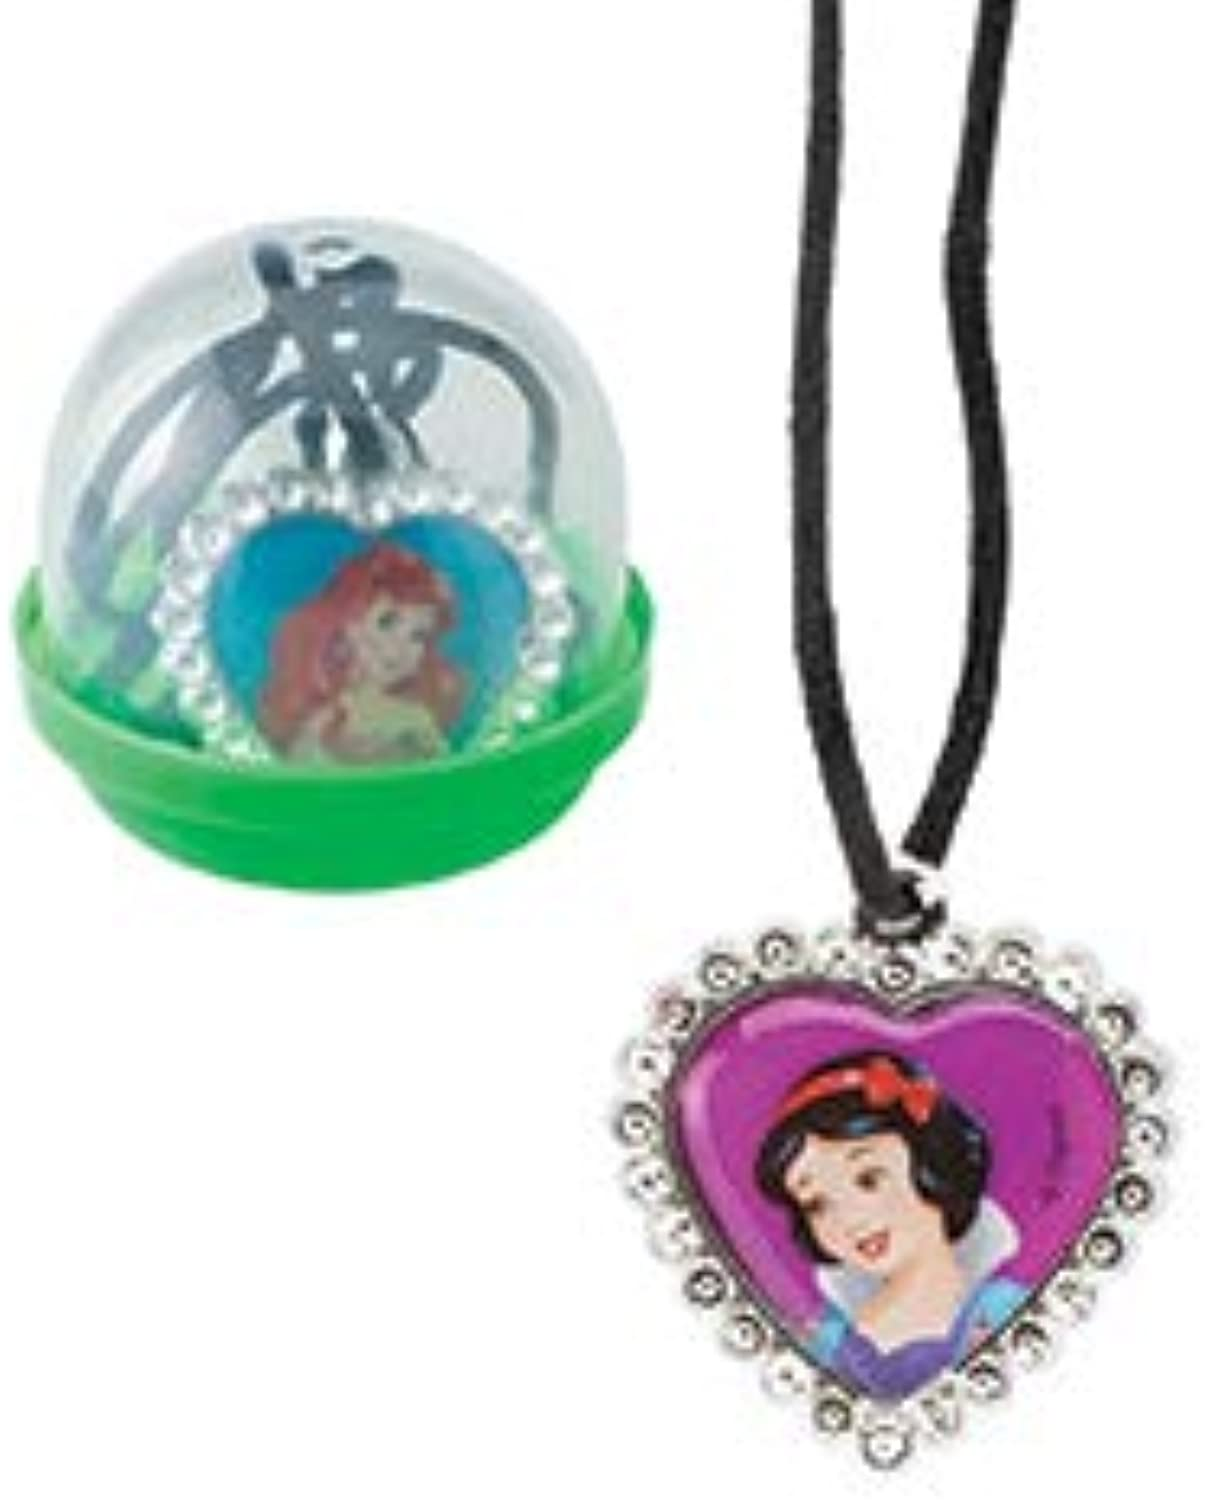 Disney Princess Jewel Heart Necklace in 2  Capsules  Prizes 250 per Pack